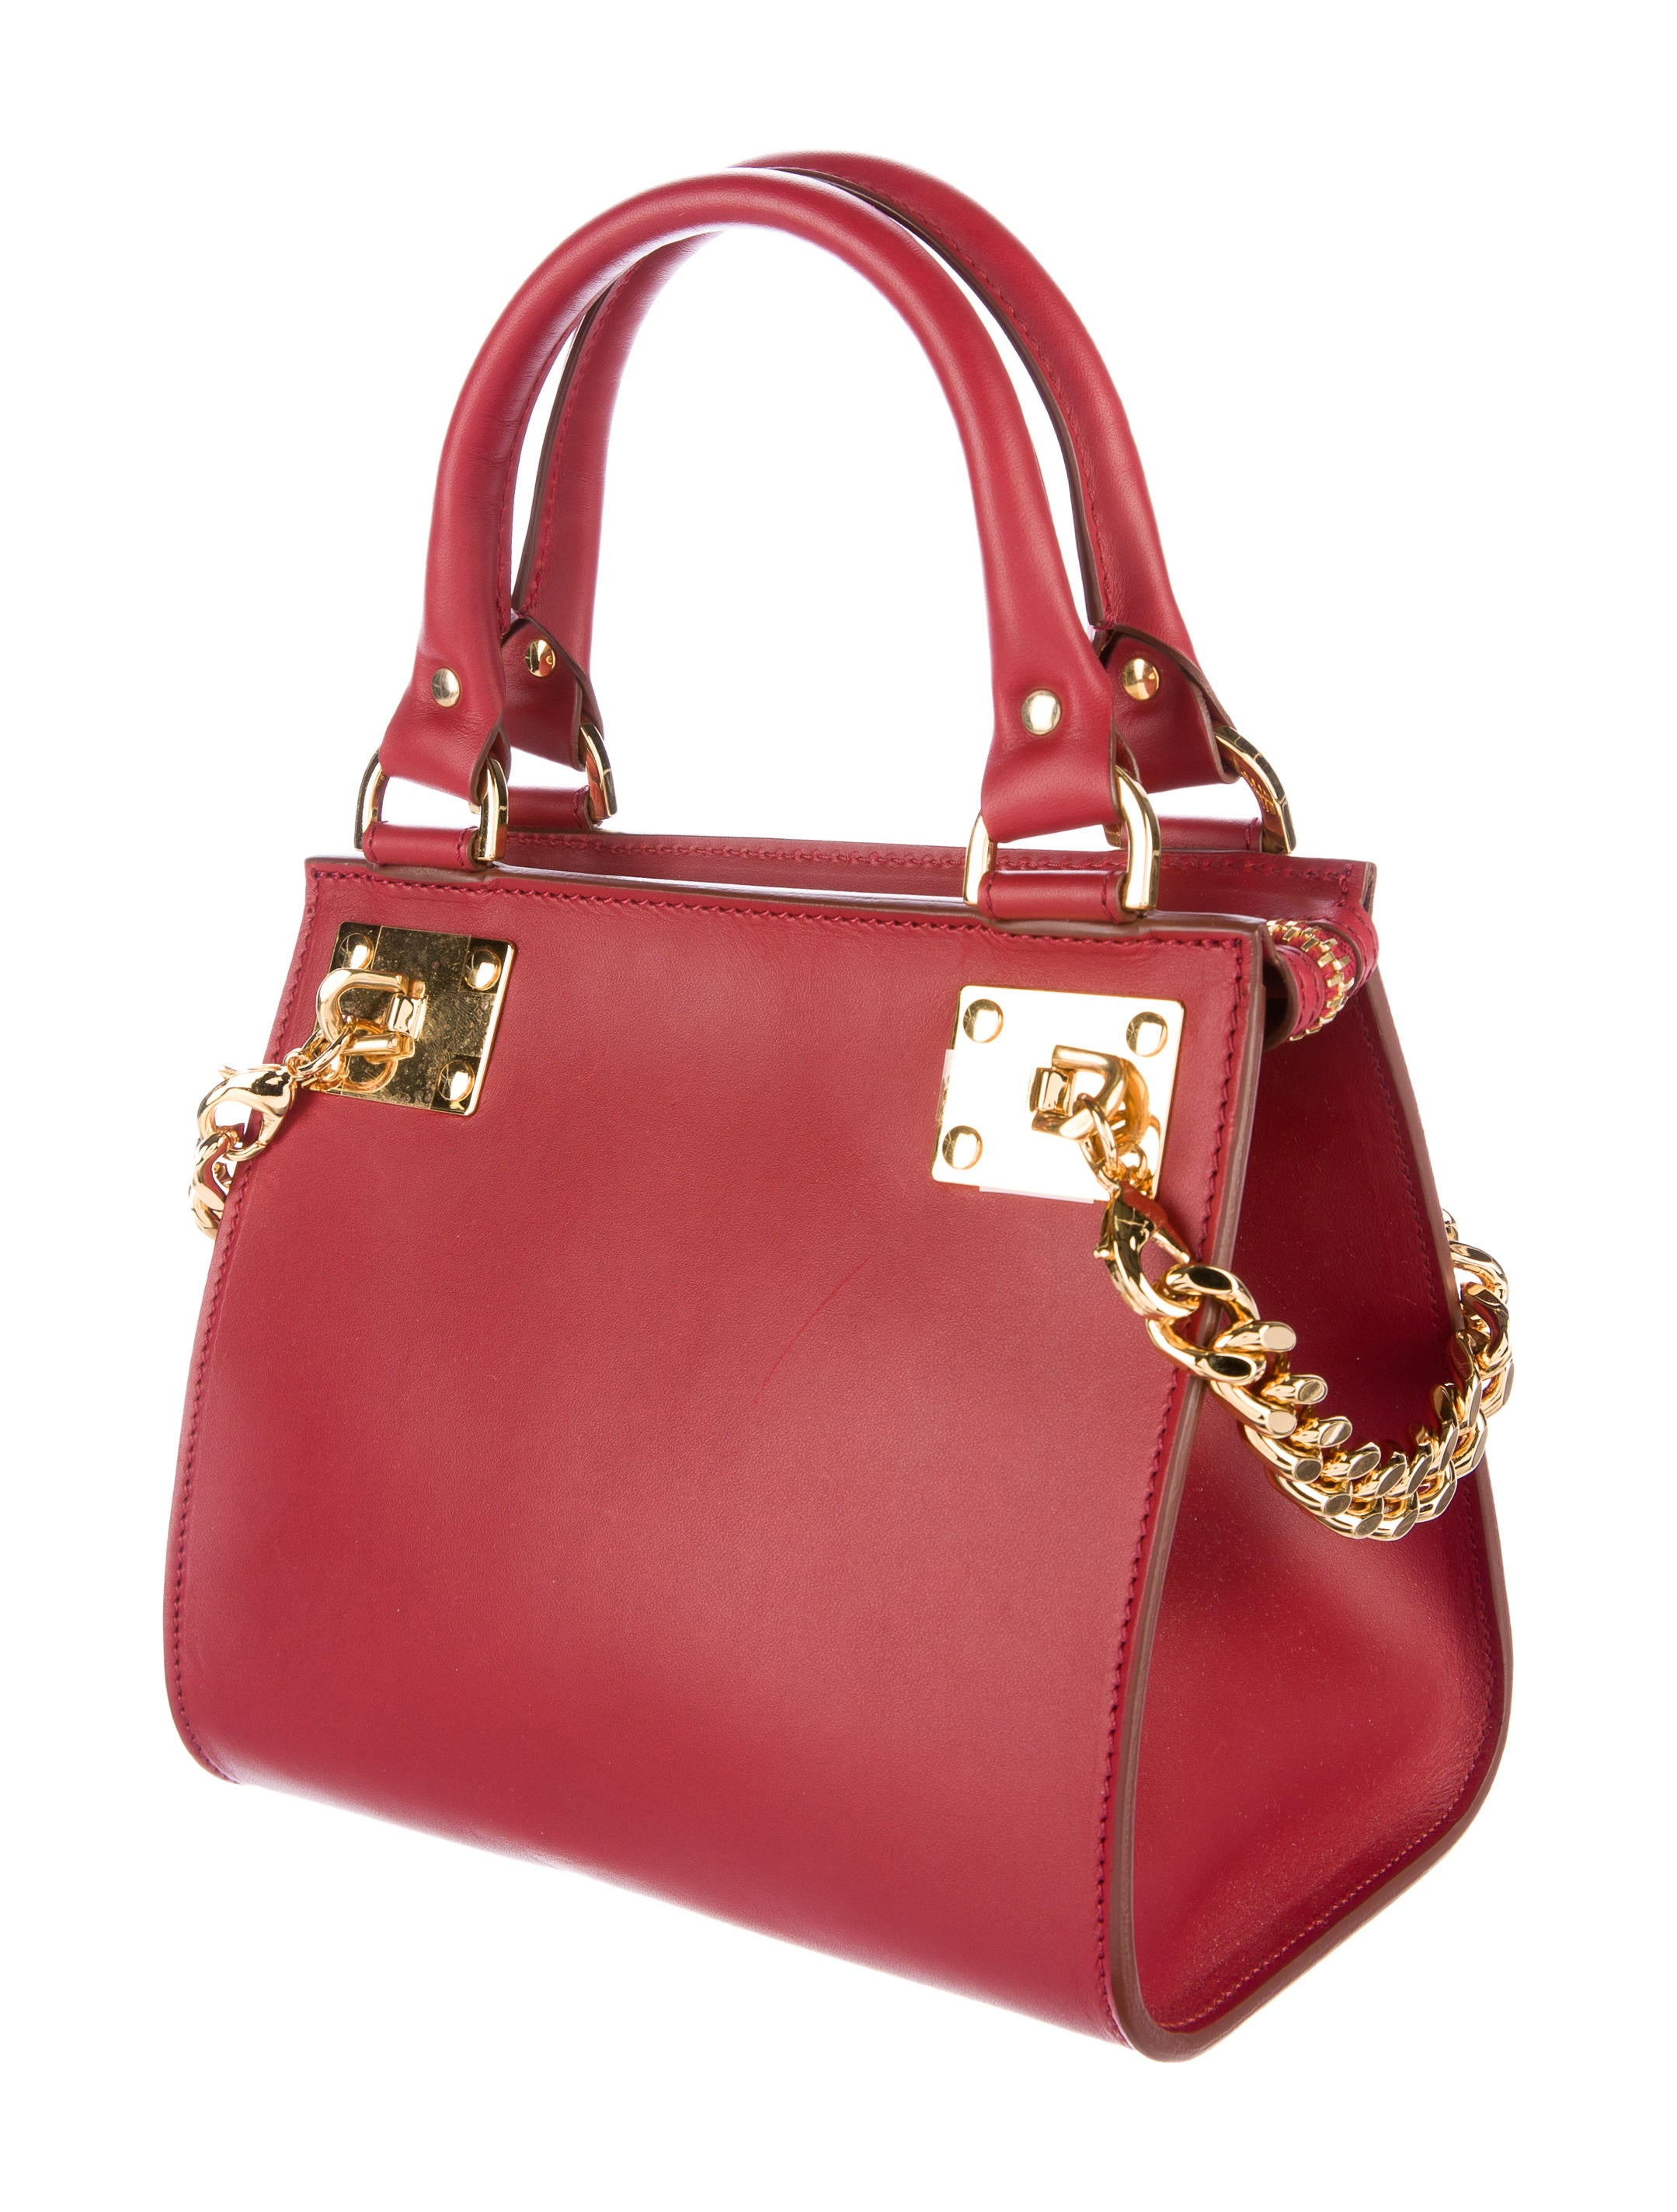 Designer Handbags Designer handbags are for the woman that has a passion for beauty and amazing quality. Stand out from the crowd with a designer bag that makes you feel like you deserve the best.